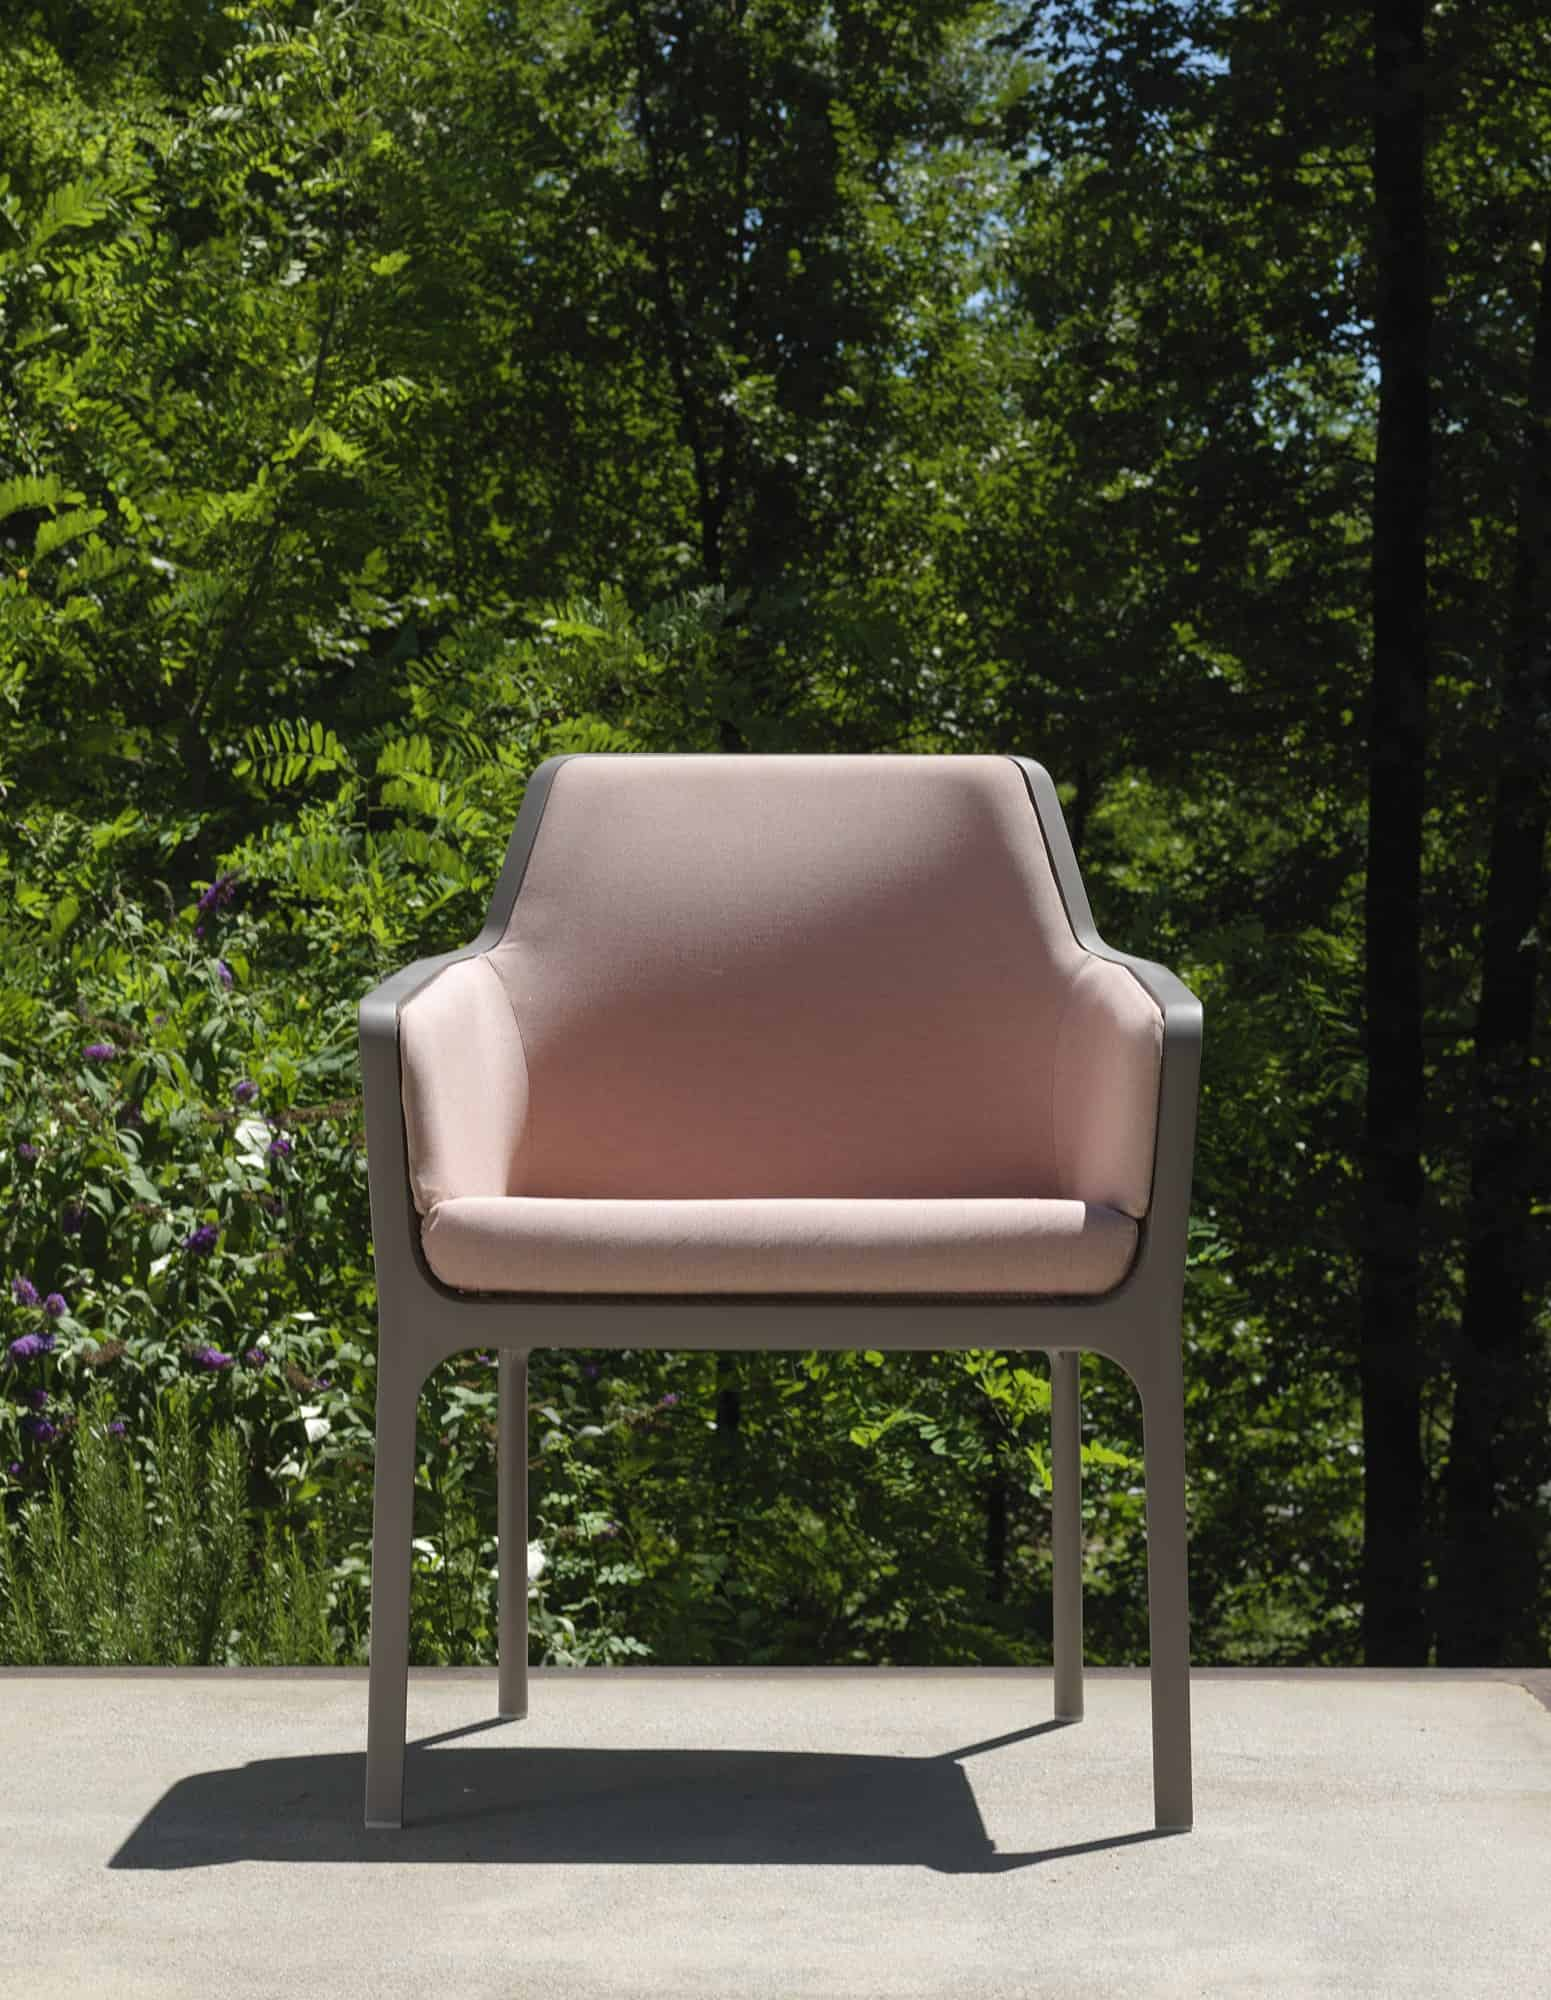 Net outdoor furniture - Relax chair by Nardi